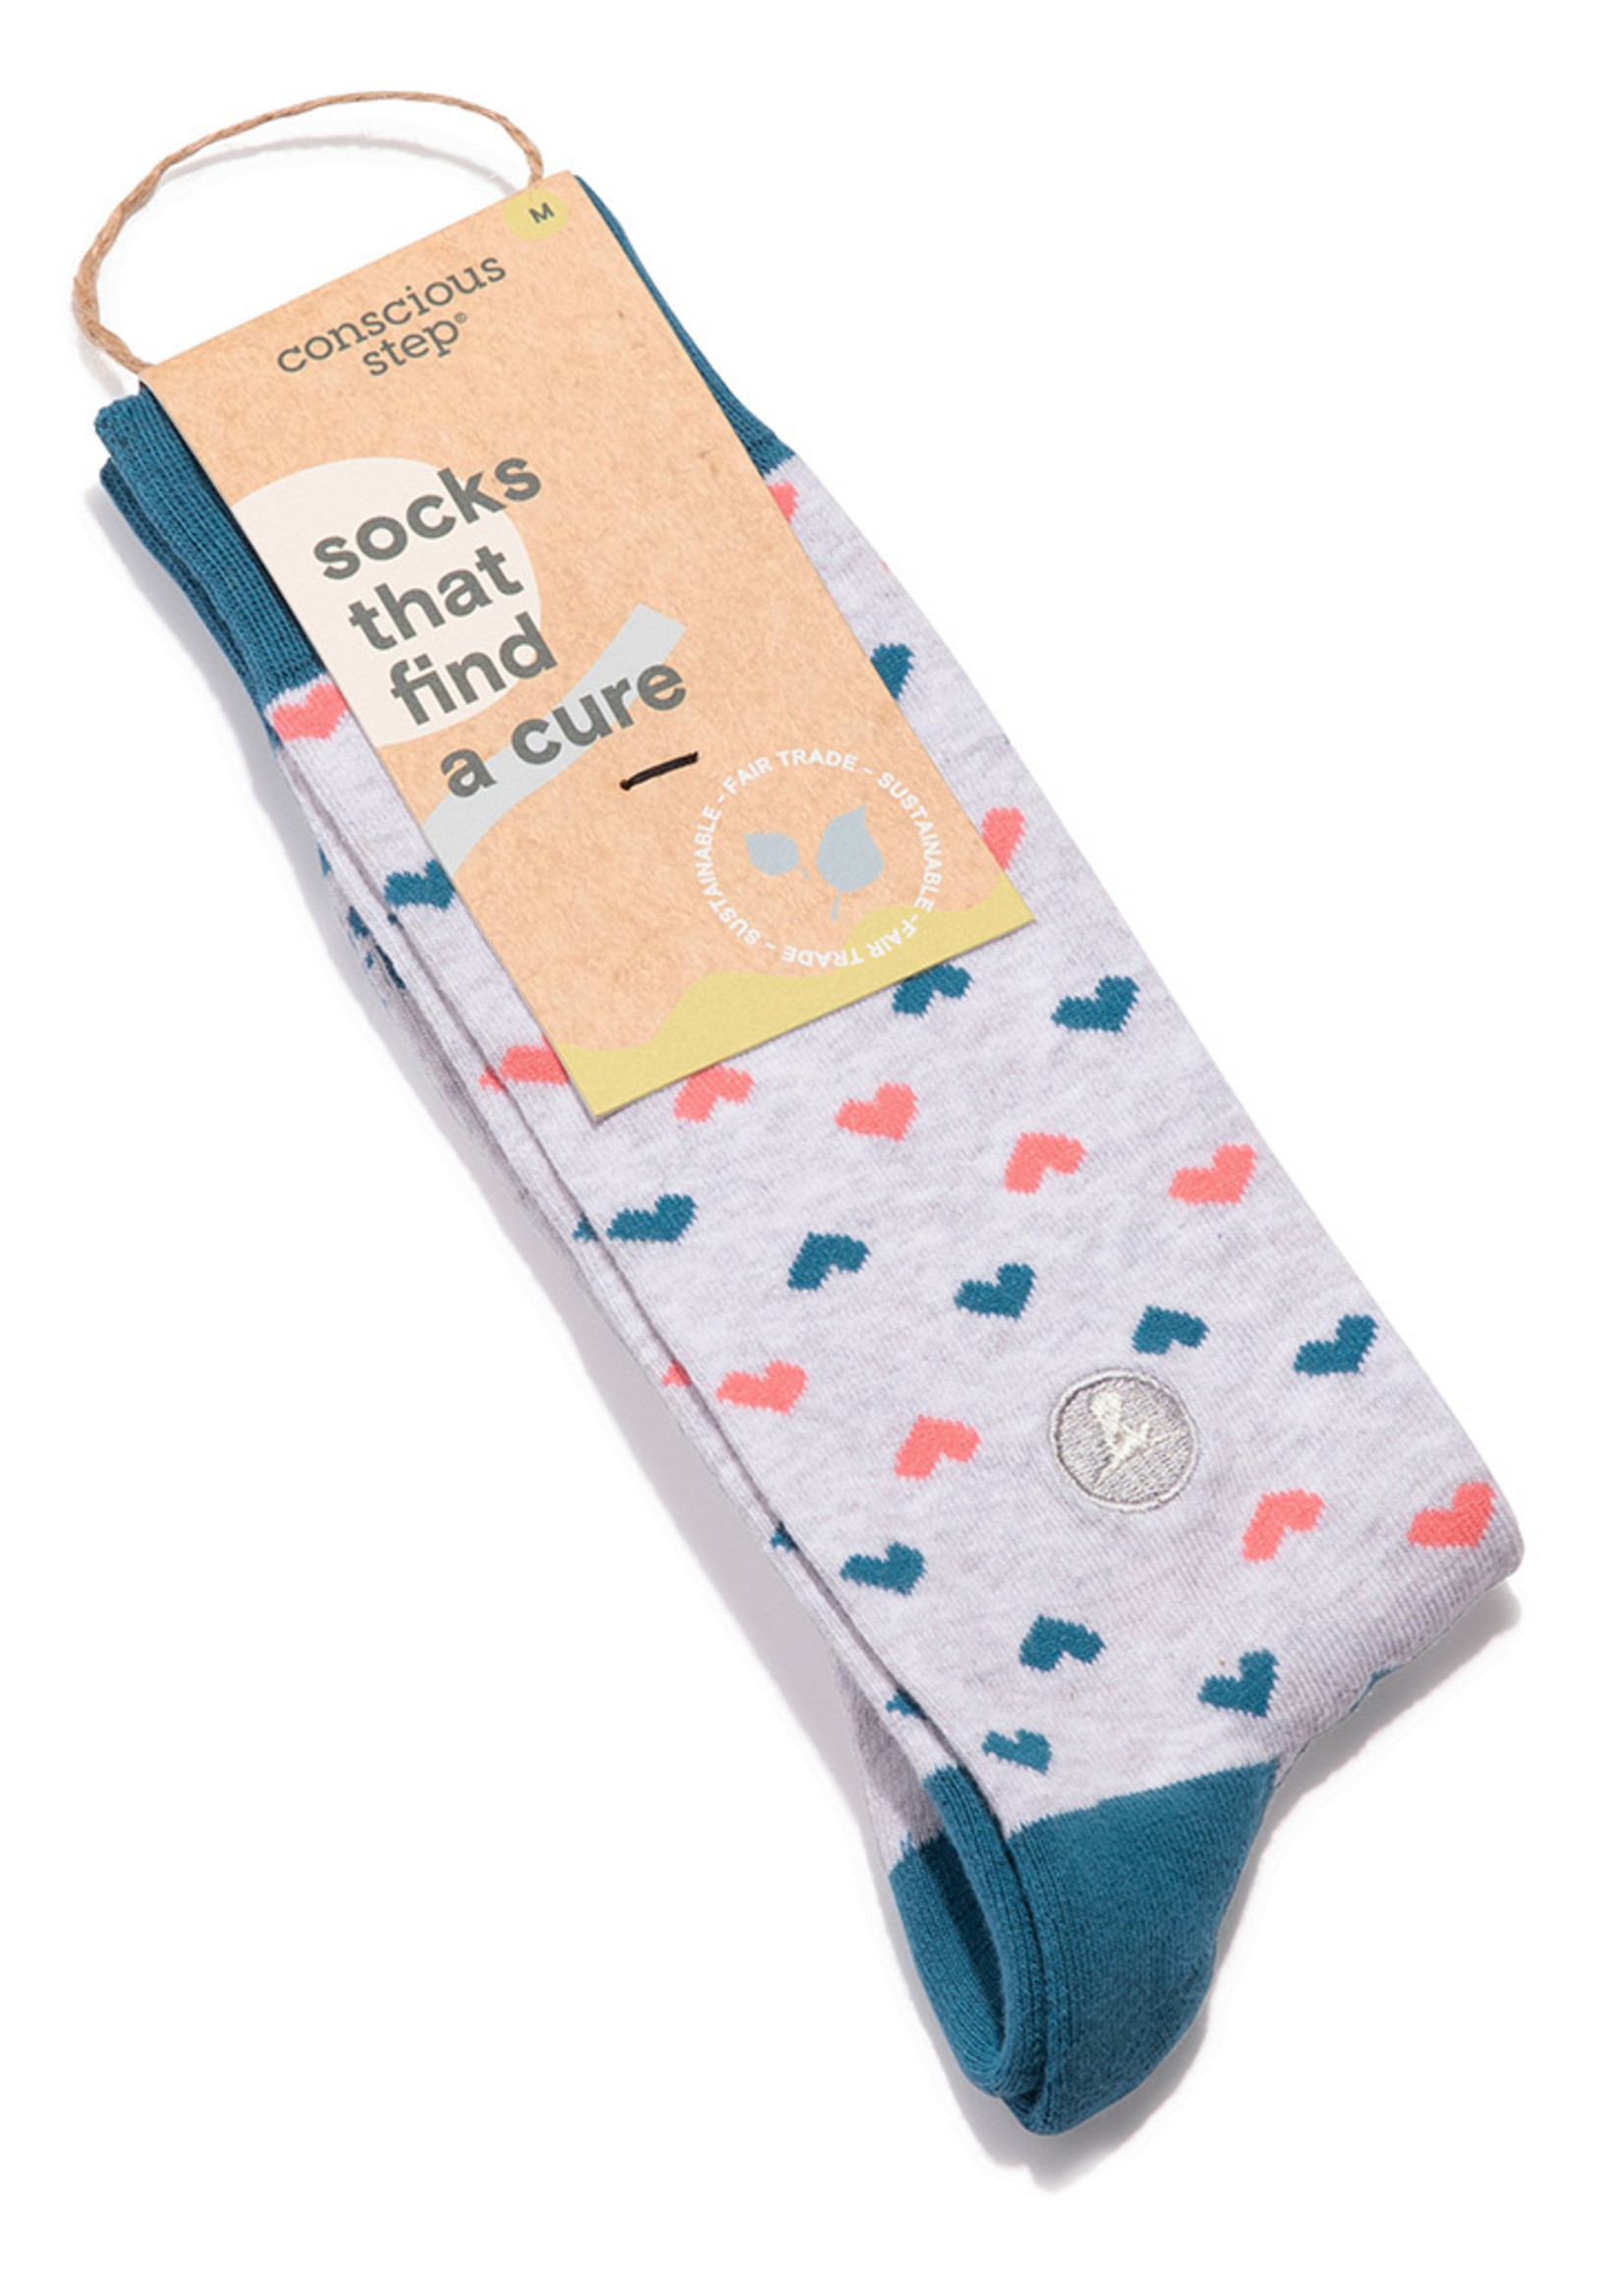 Conscious Step Women's Socks That Find a Cure